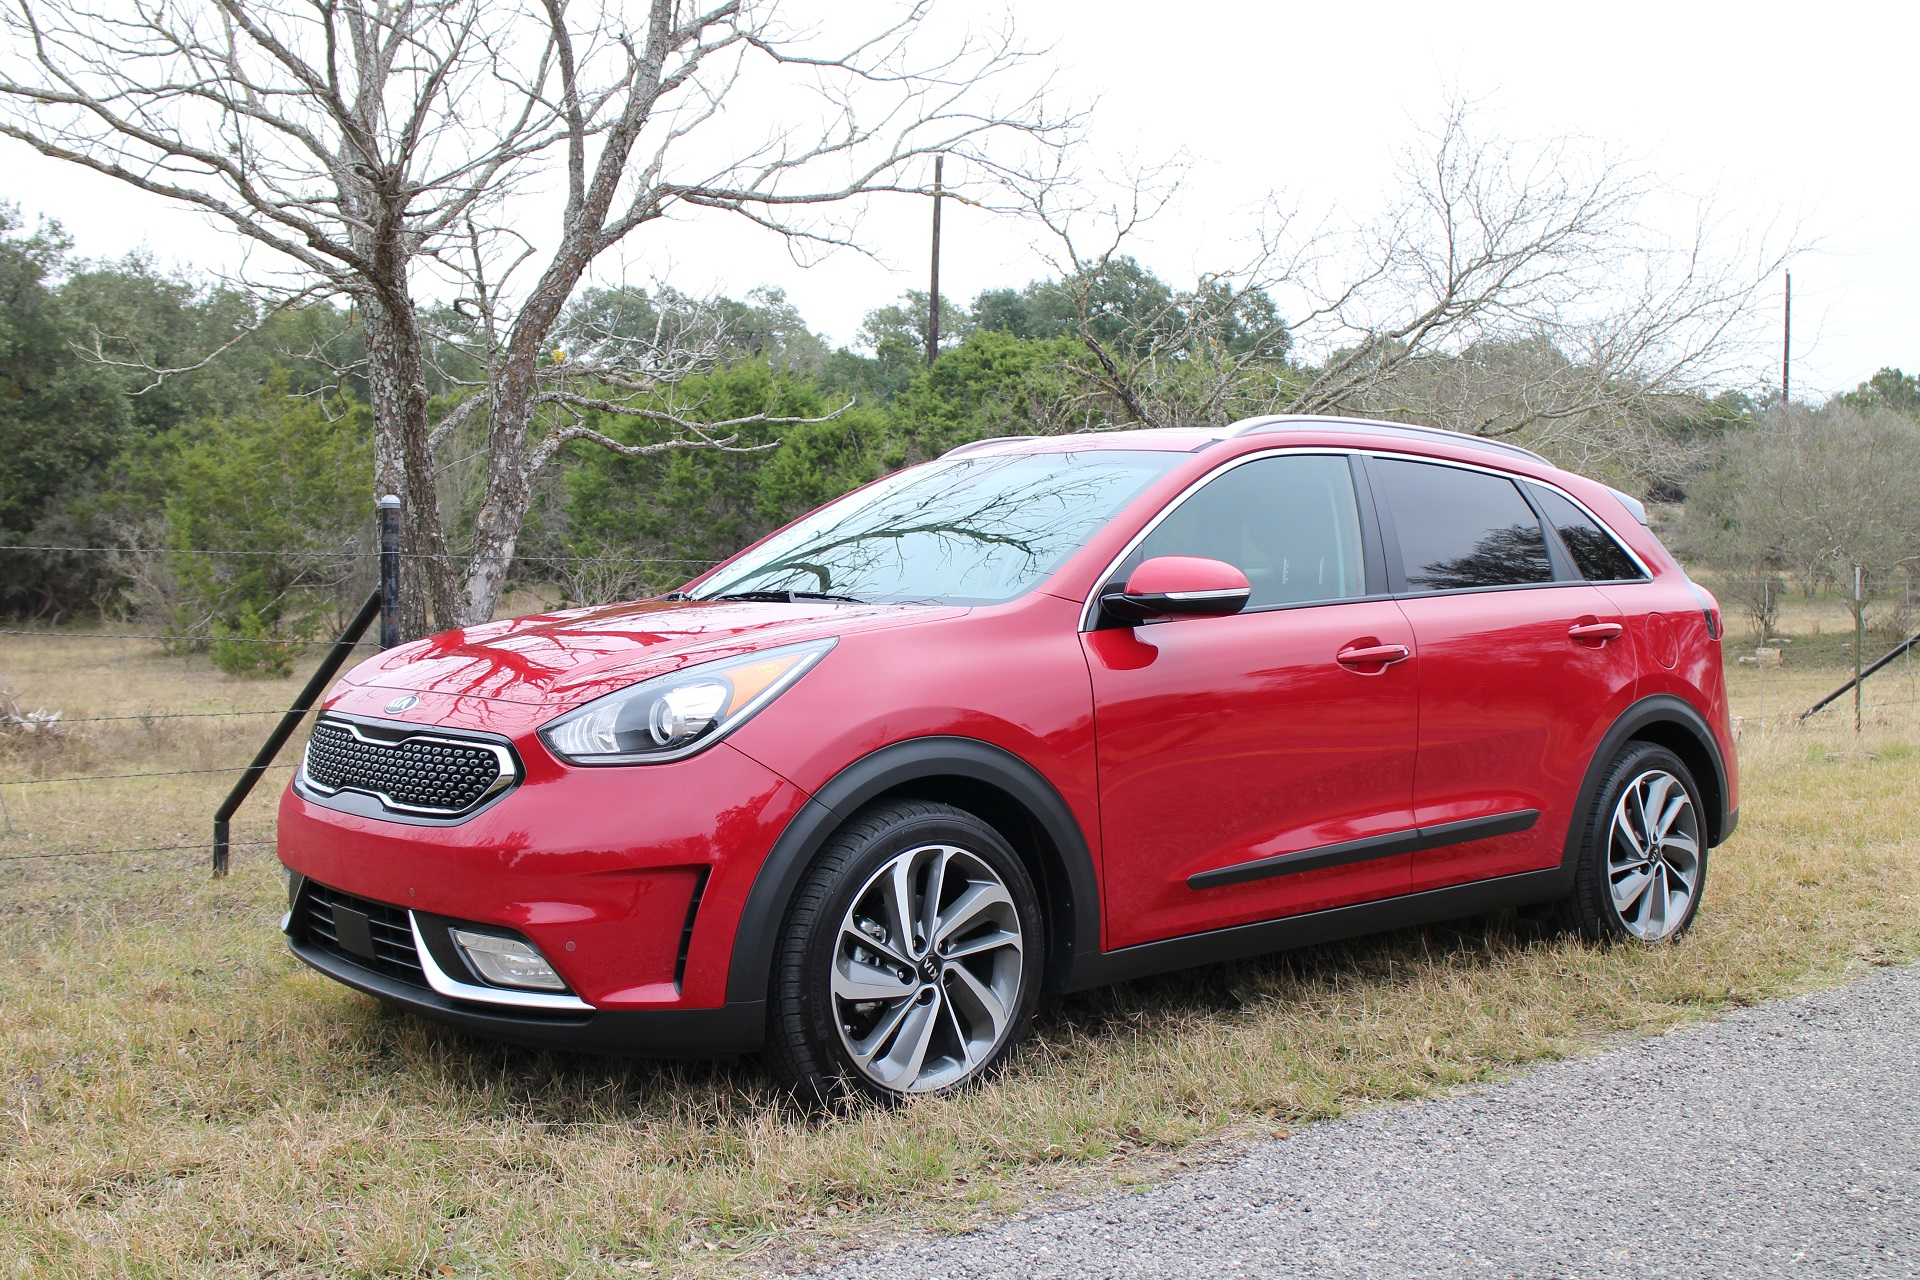 World Car Nissan San Antonio >> 2017 Kia Niro hybrid: first drive report